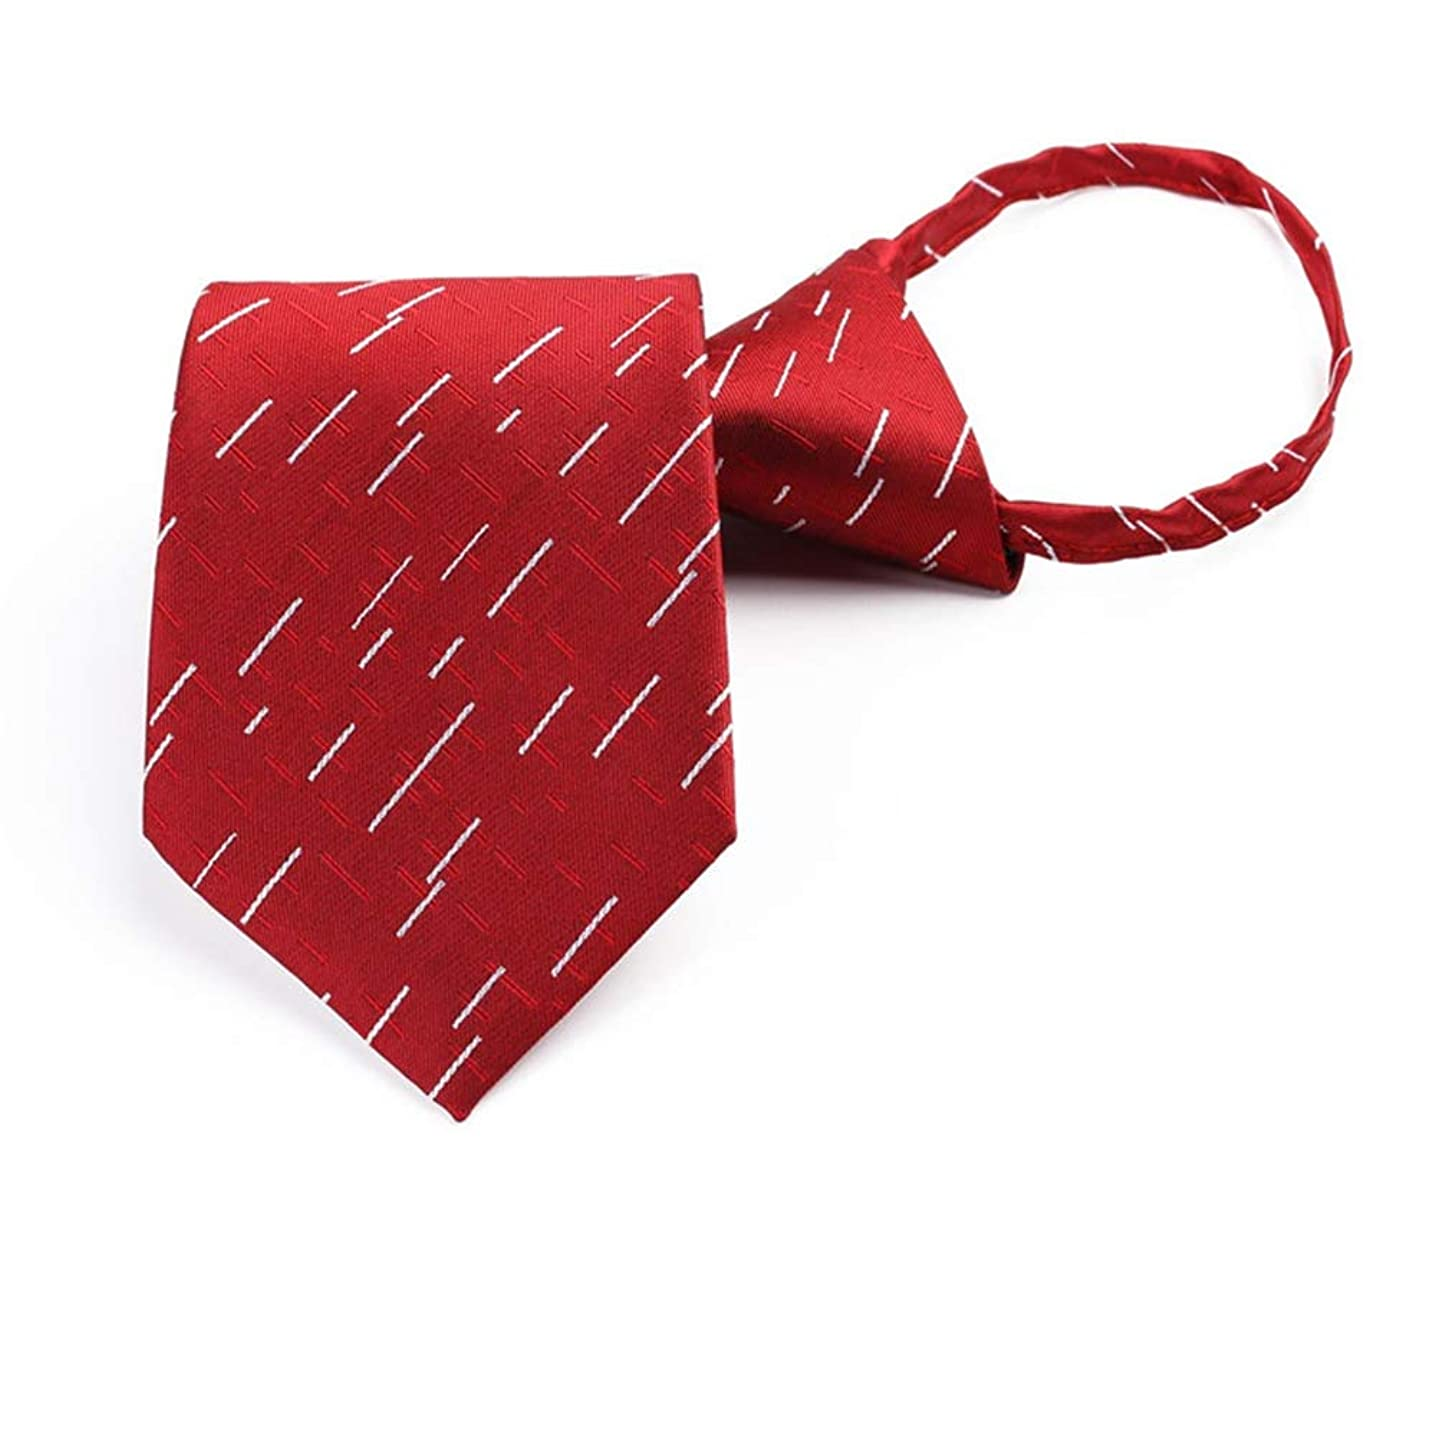 8cm Necktie For Men Zipper Narrow Lazy Easy To Pull Rope Striped Dots tie